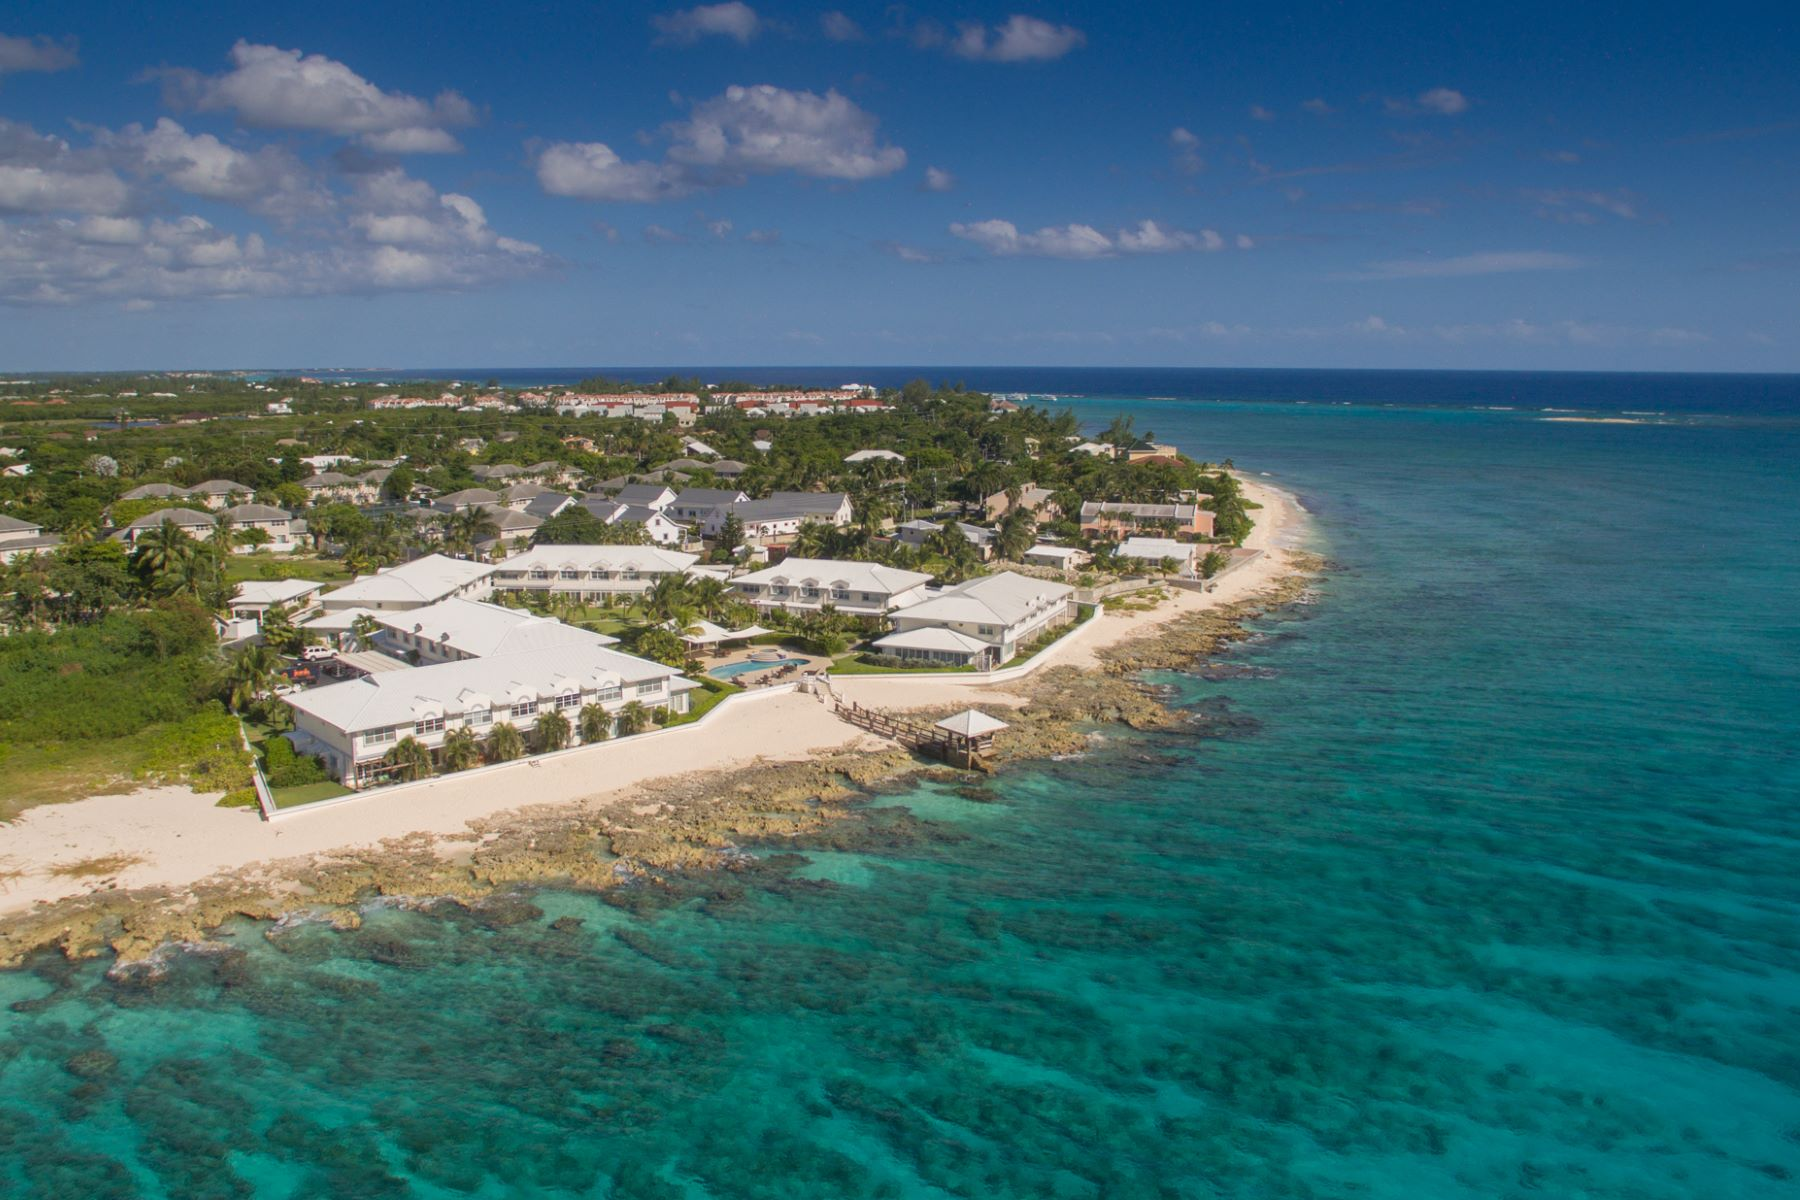 Condominium for Sale at Windsor Village #17 Windor Village #17 South Church Street George Town, KY1 Cayman Islands